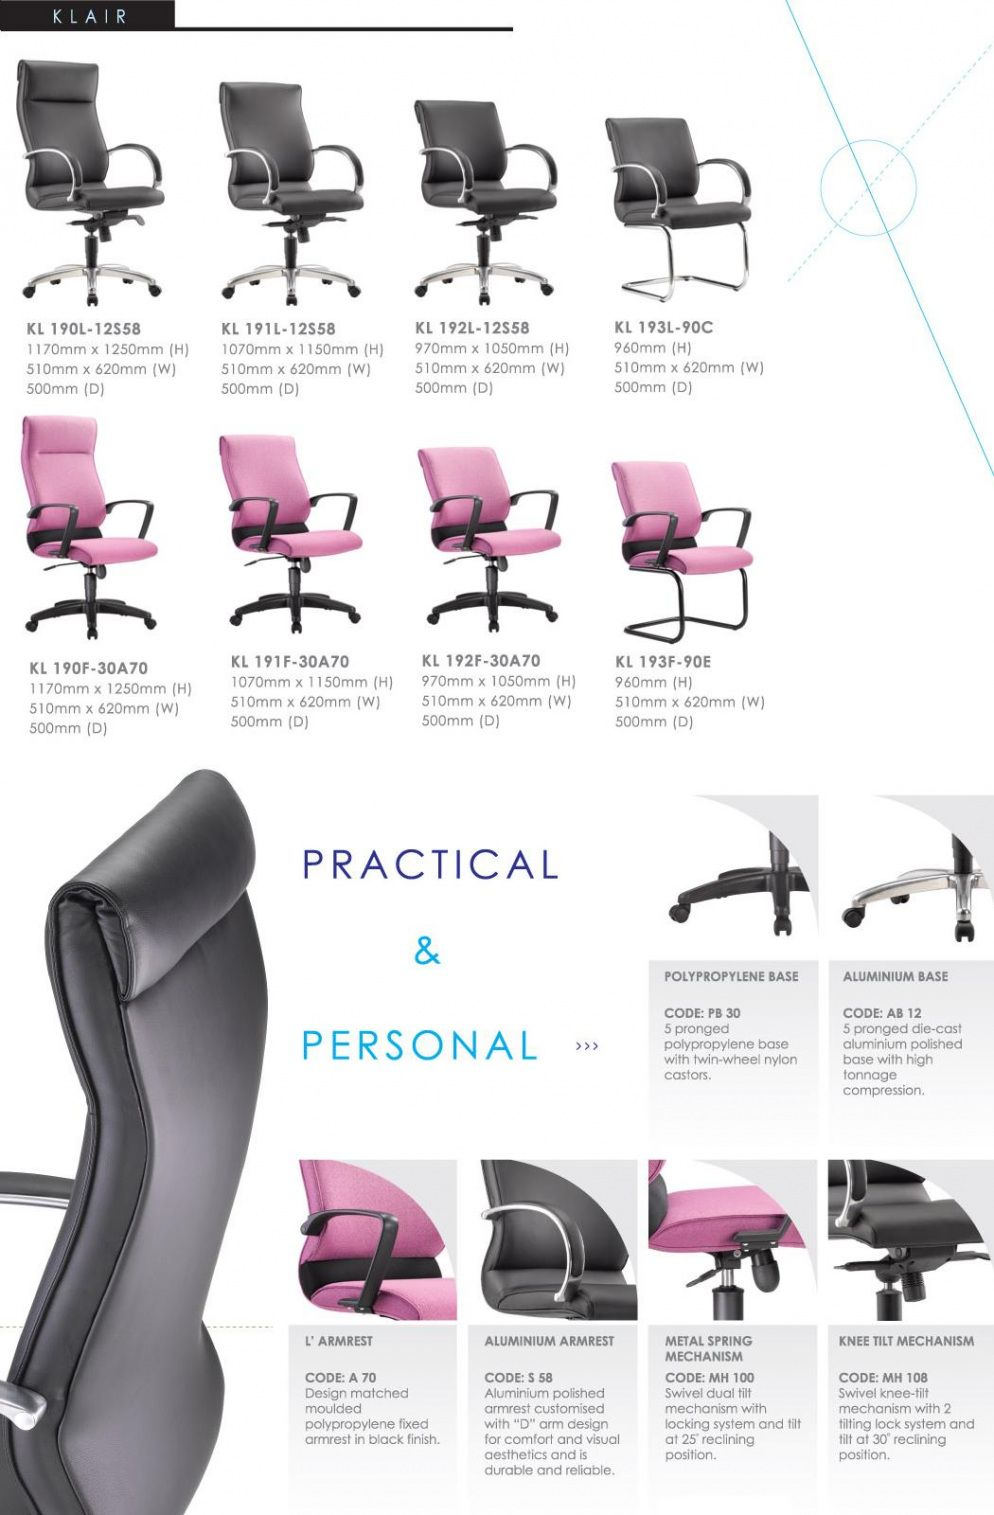 Types Of Office Chairs Furniture For Home Check More At Http